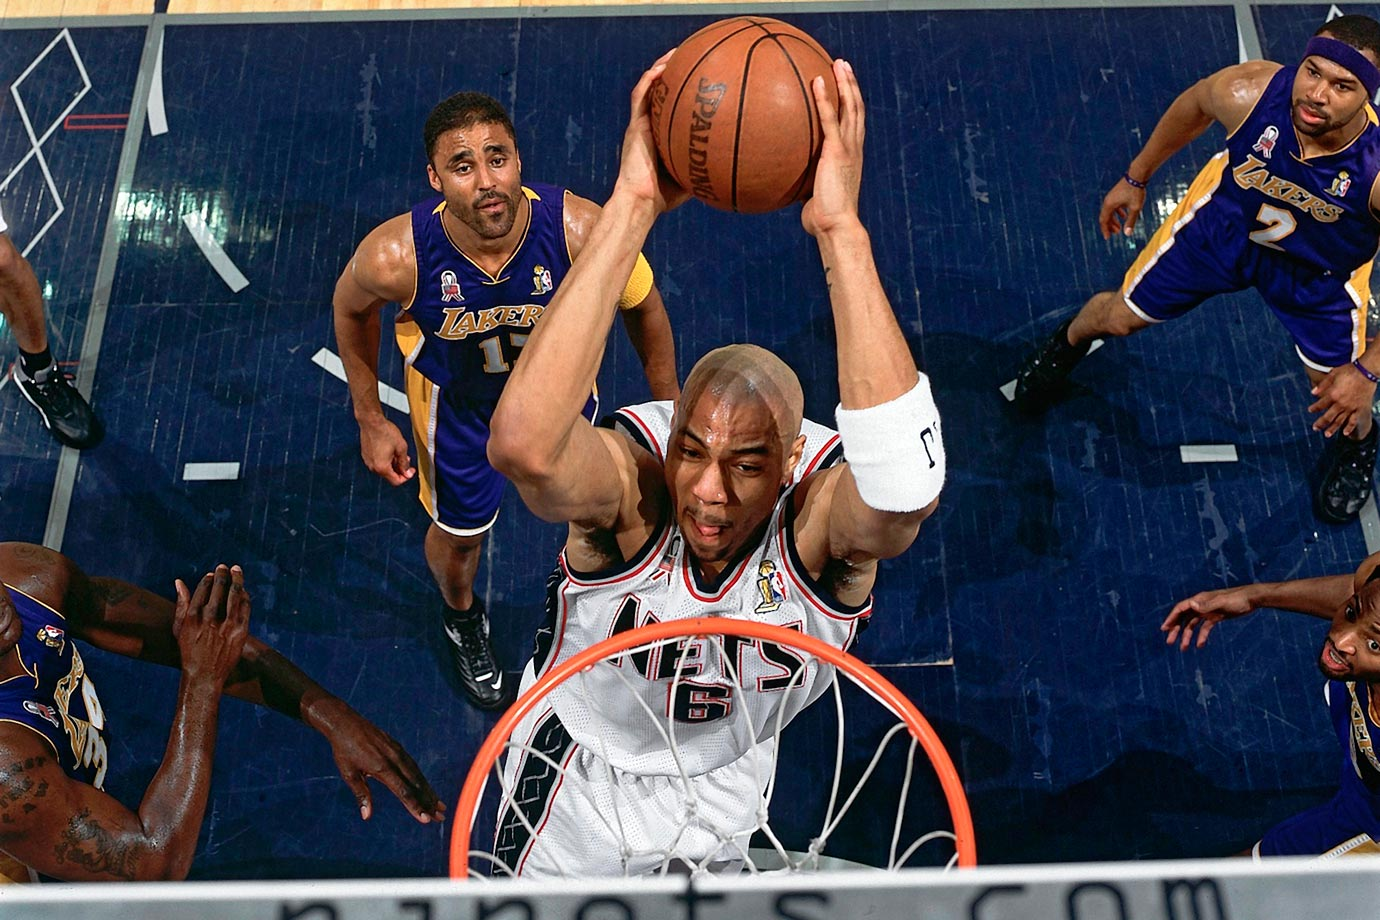 Pegged to draft seventh after a 31-51 season, the Nets instead cashed in on their 4.4% chance of winning the lottery. New Jersey picked forward Kenyon Martin, who proved to be a key part of back-to-back Finals teams in 2002-03 before being shipped to Denver as part of a sign-and-trade deal in 2004.